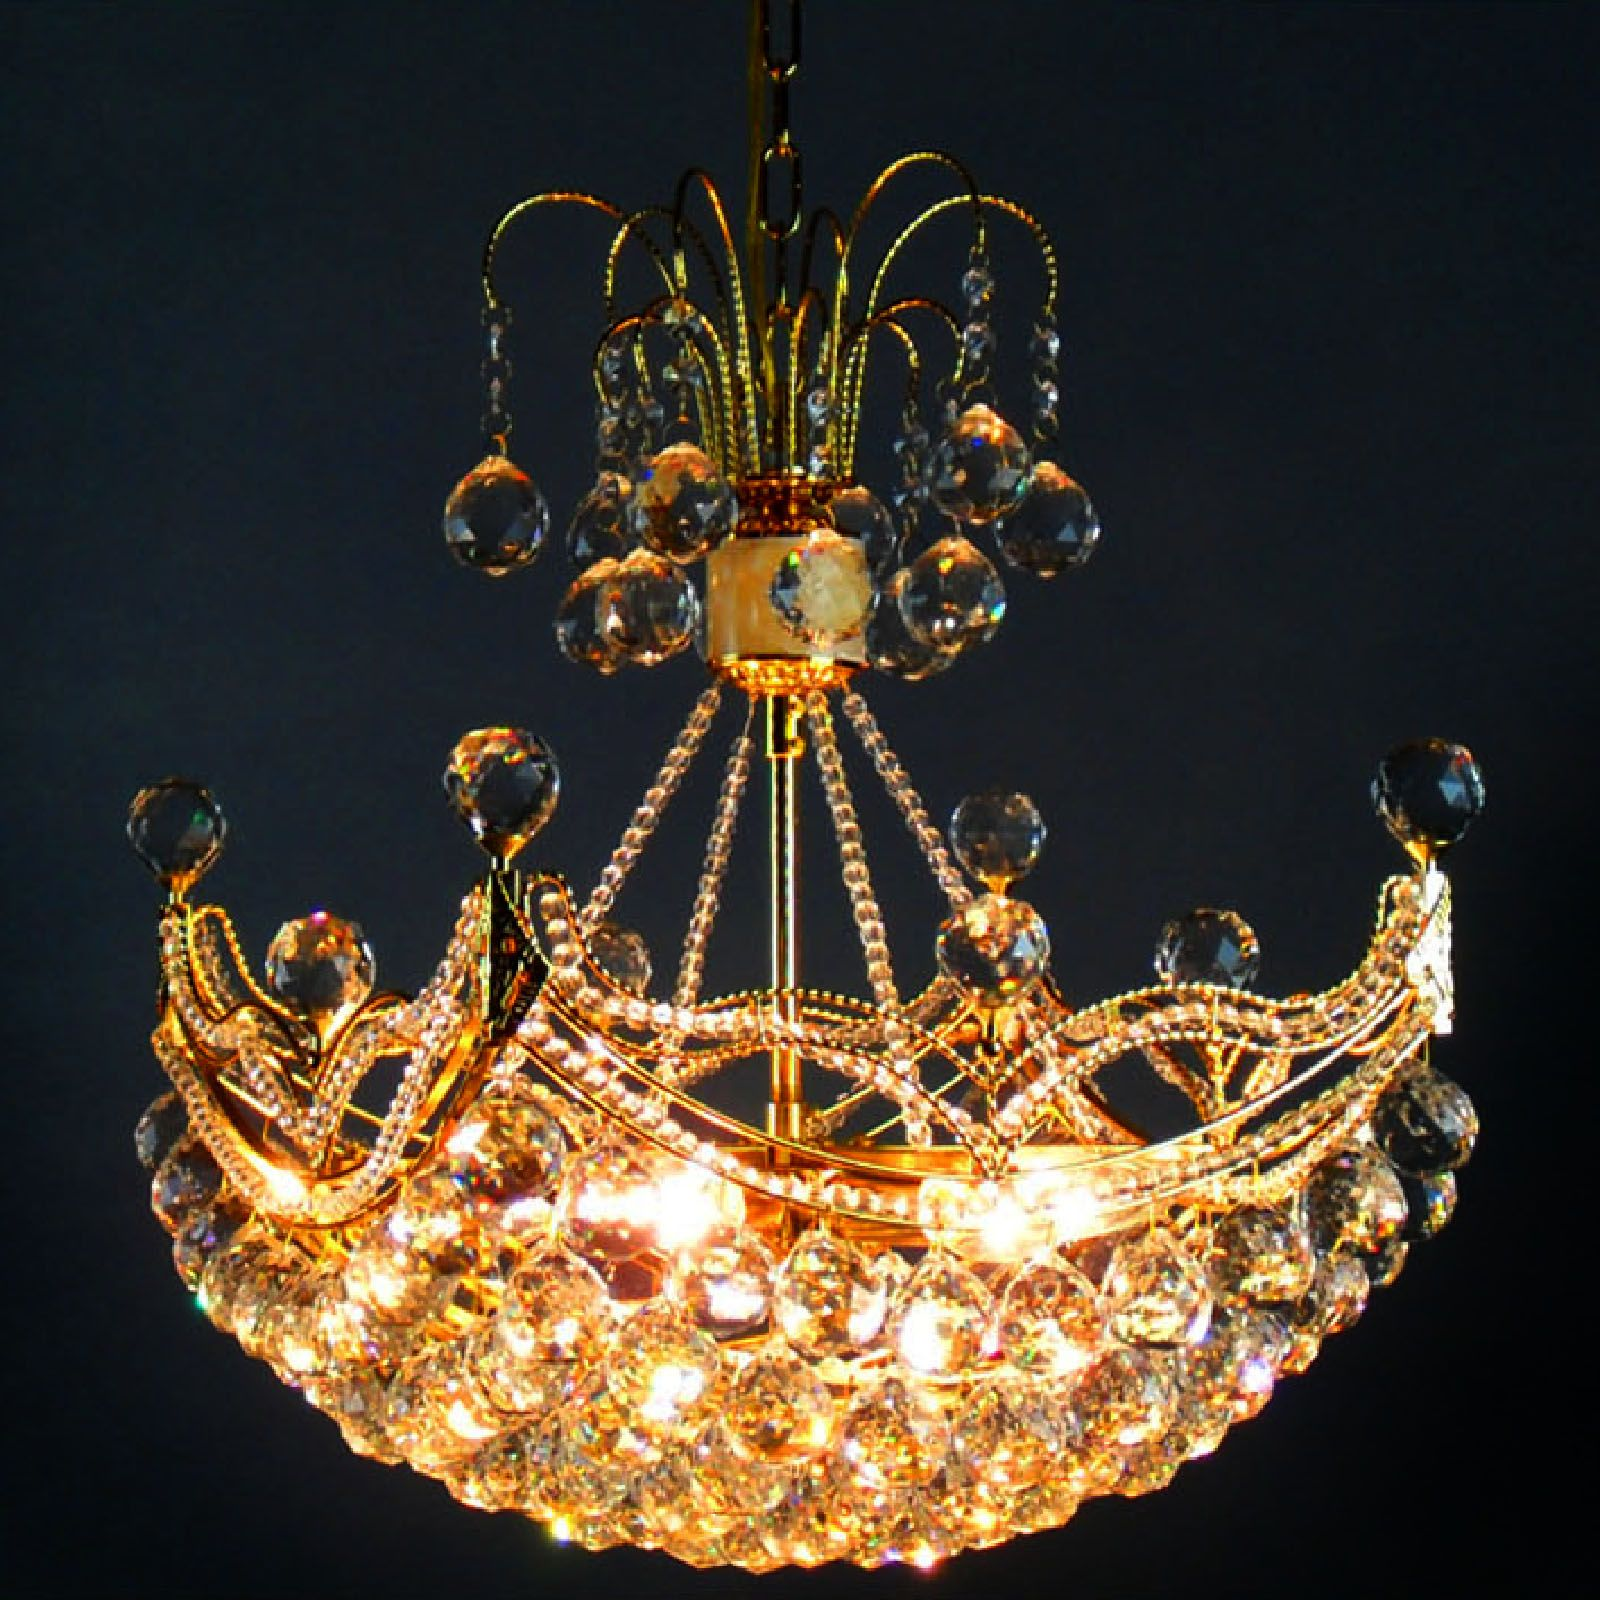 Byb French Empire Crystal Chandelier Chandeliers Lighting Gold H80 X Wd43 6